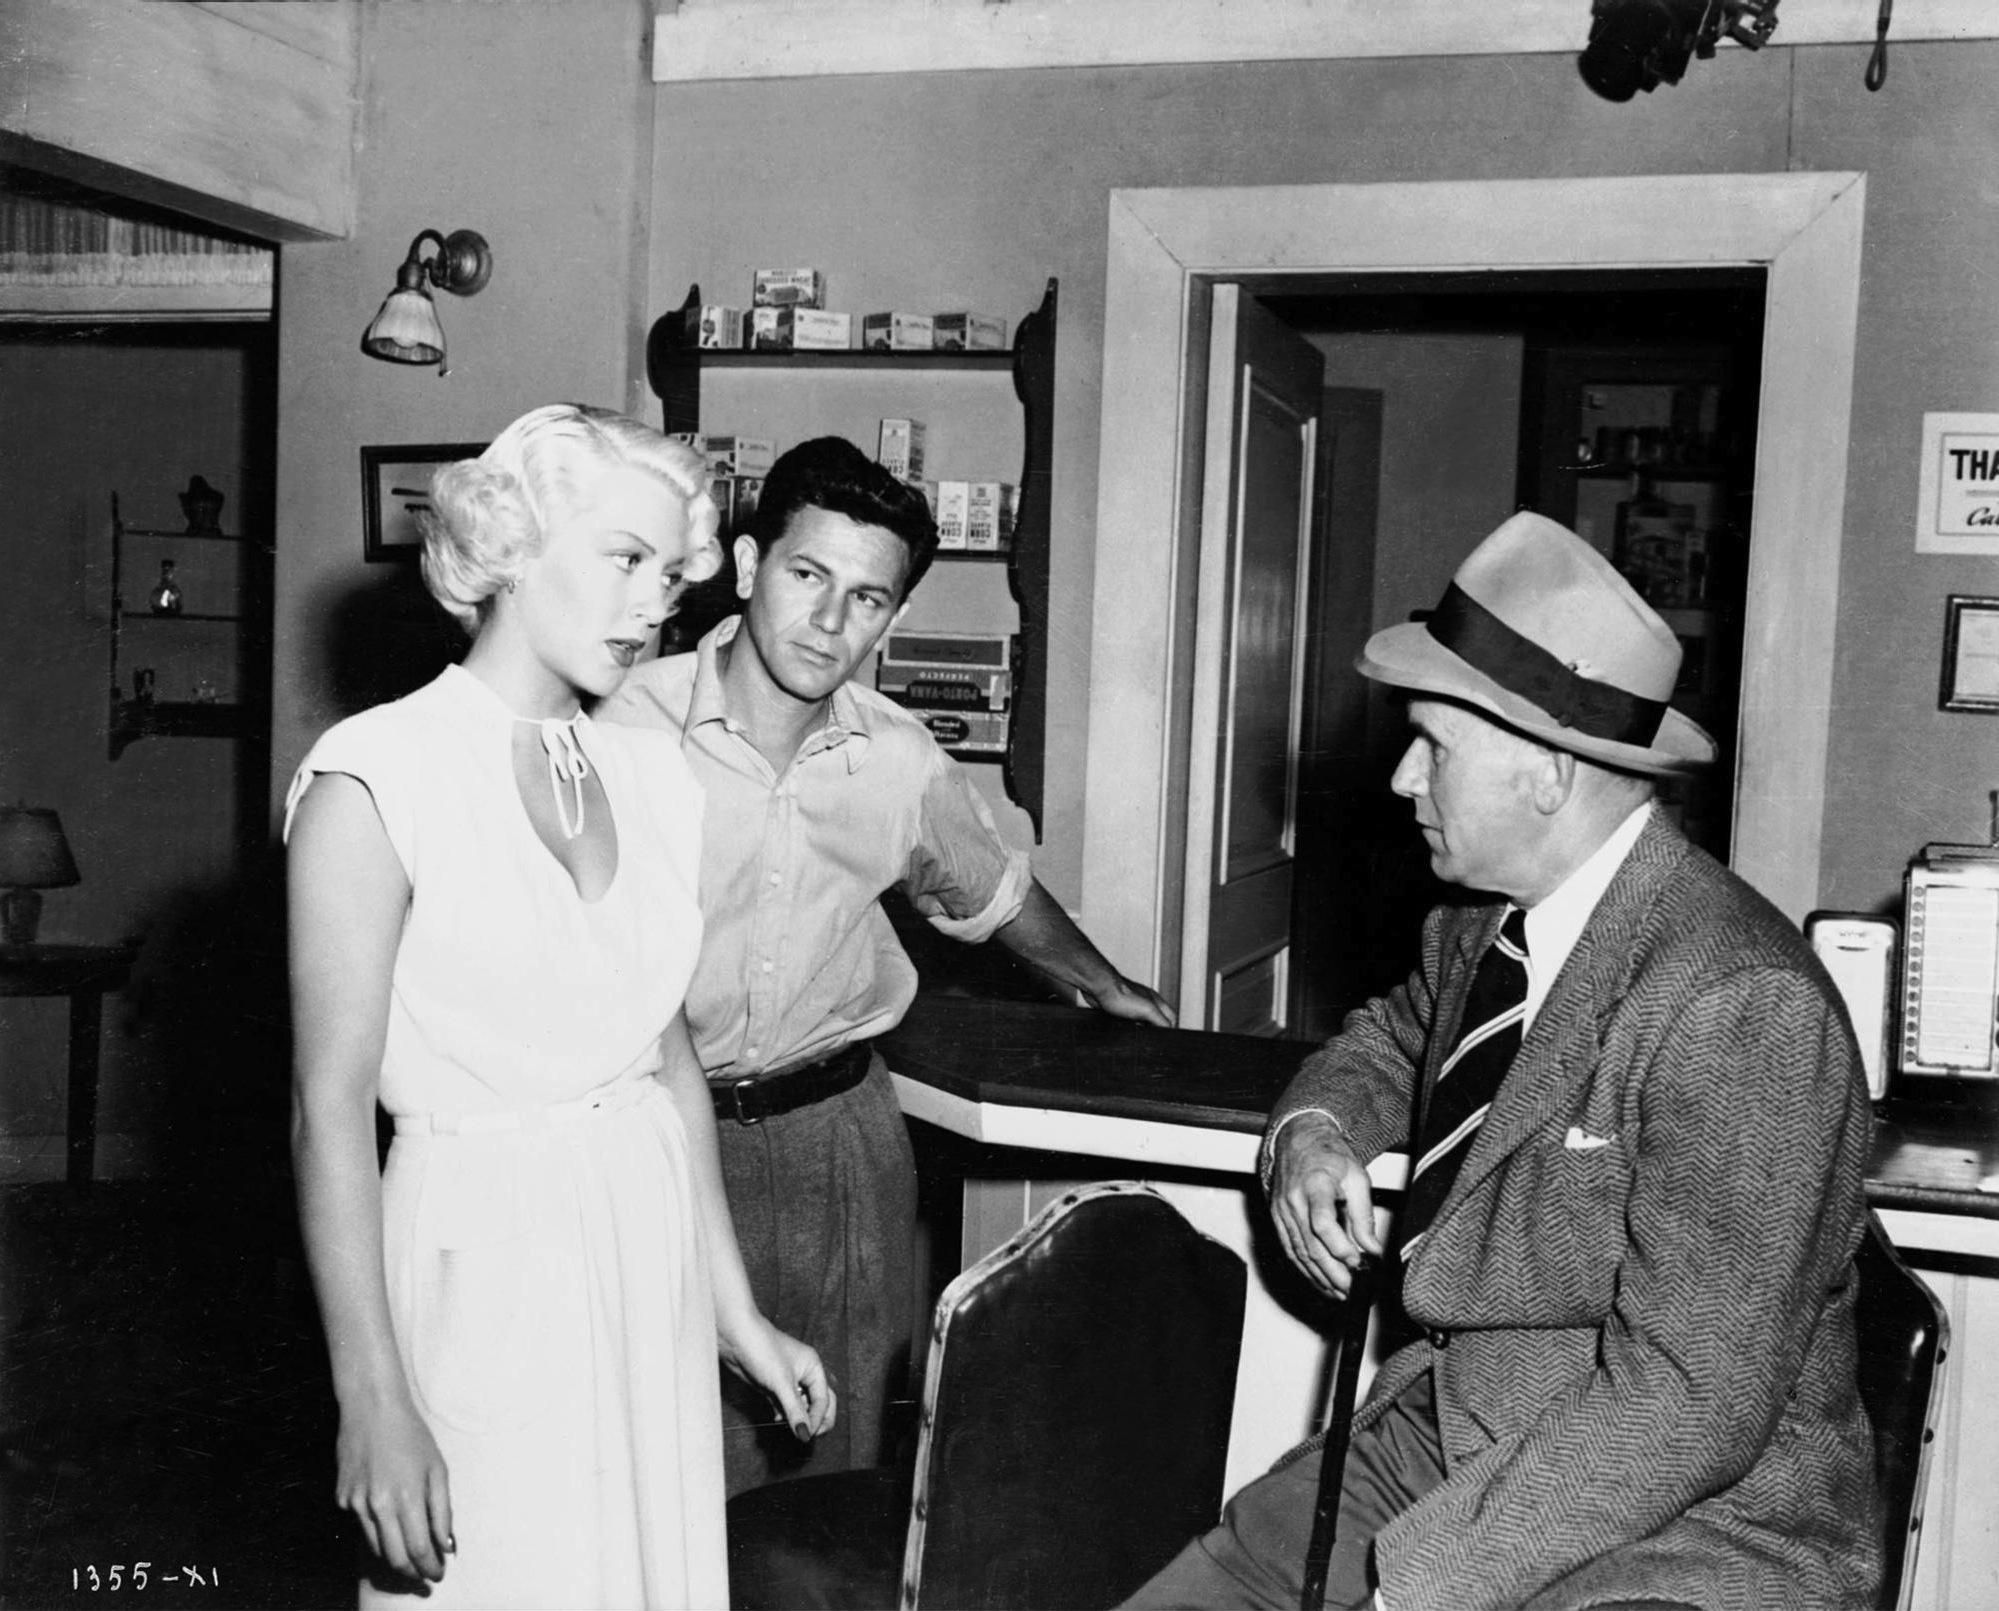 Lana Turner, John Garfield and director Tay Garnett on the set of The Postman Always Rings Twice, 1946.